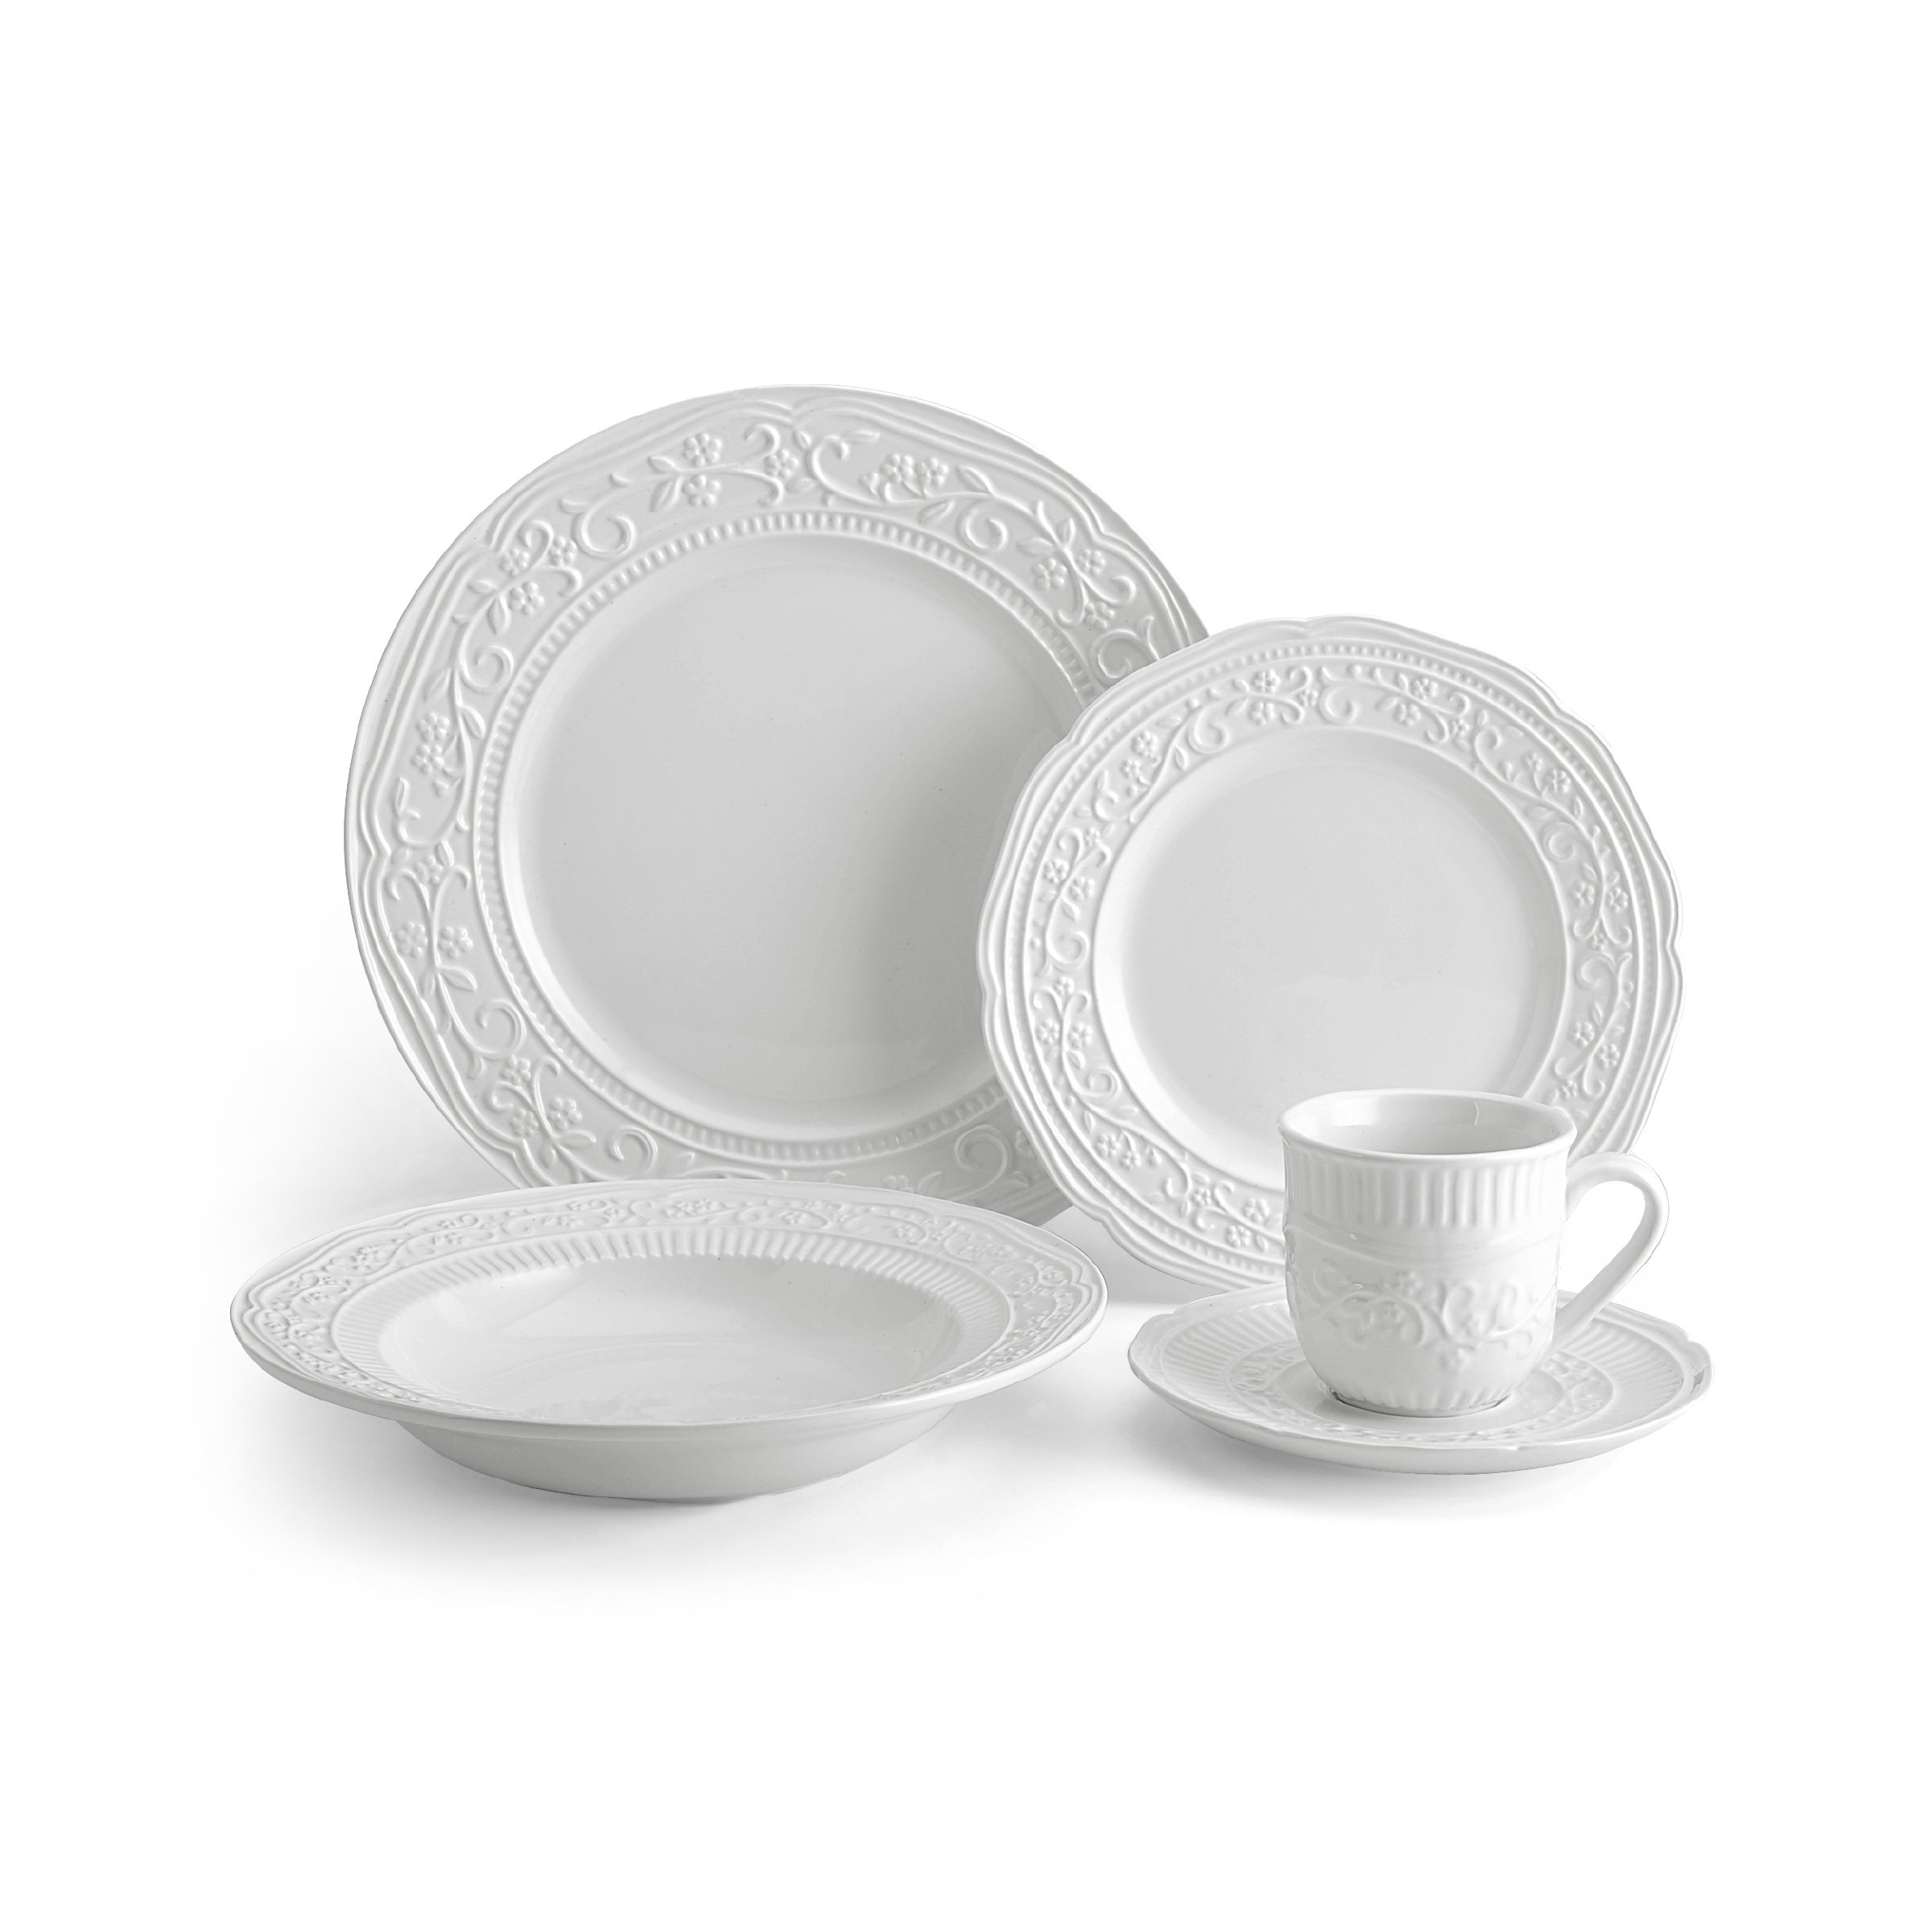 Mikasa 5224198 American Countryside 40-Piece Dinnerware Set, Service for 8